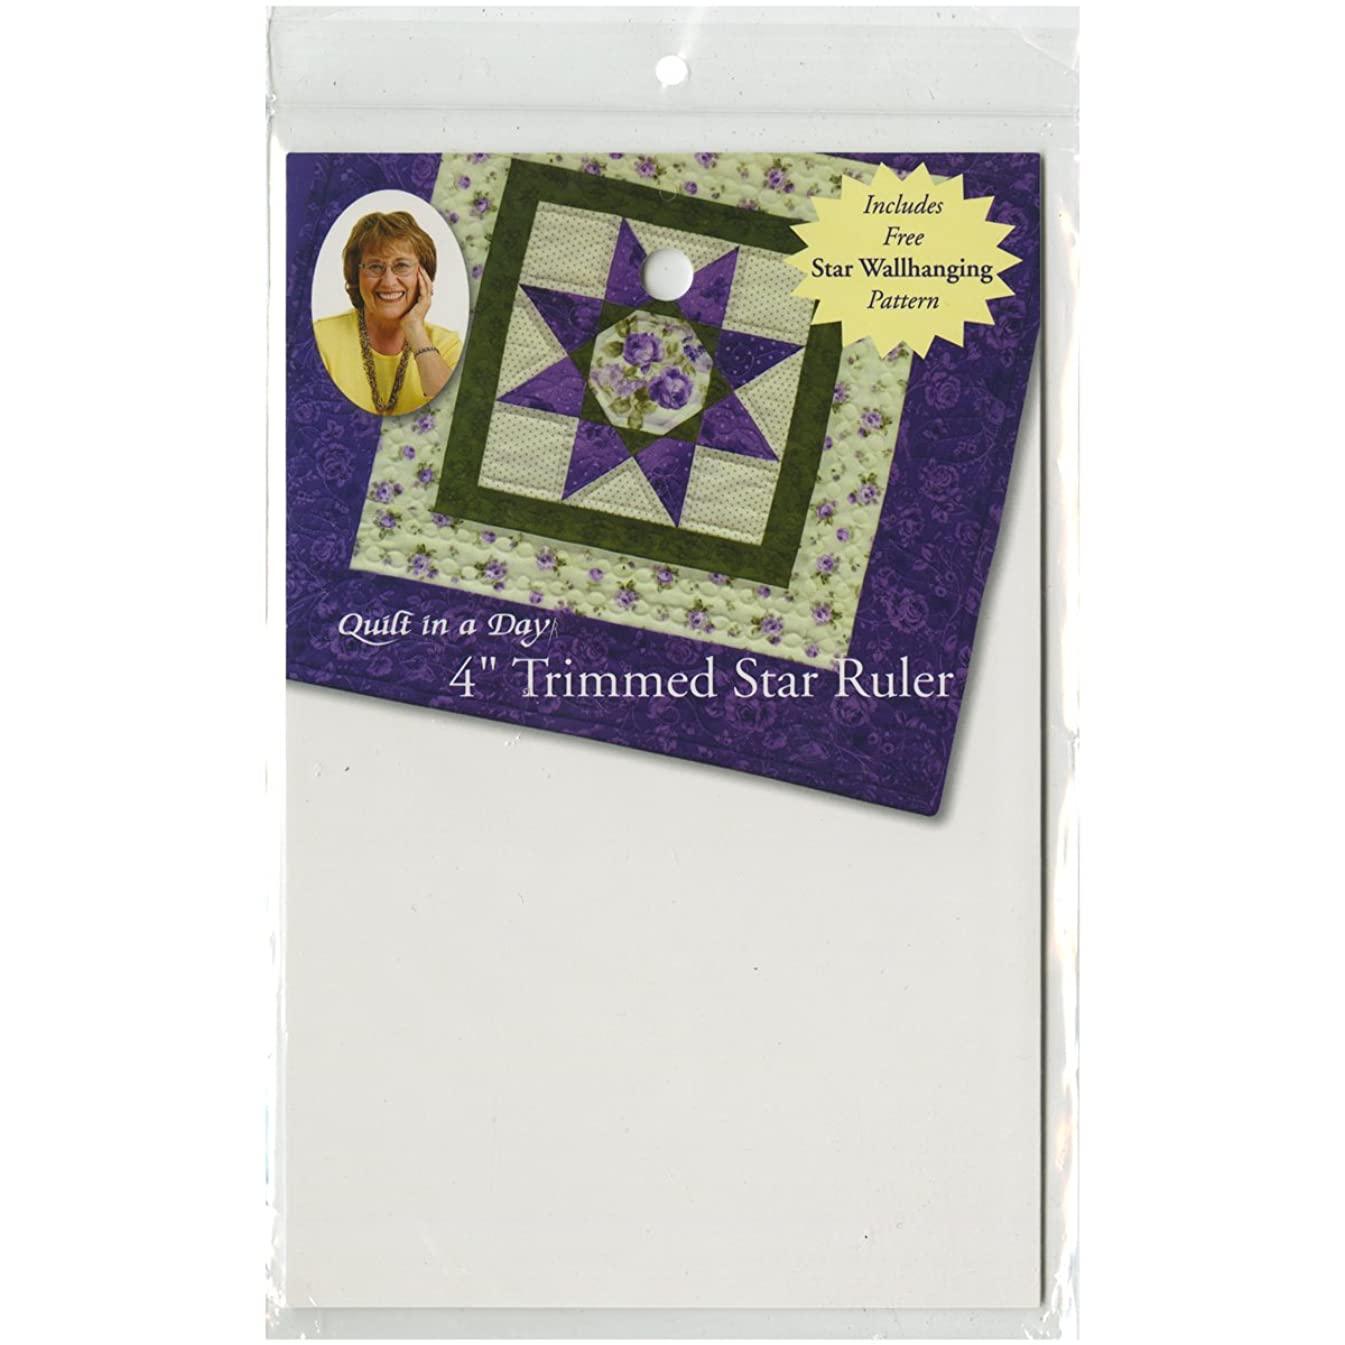 Quilt In A Day Trimmed Star Ruler, 4